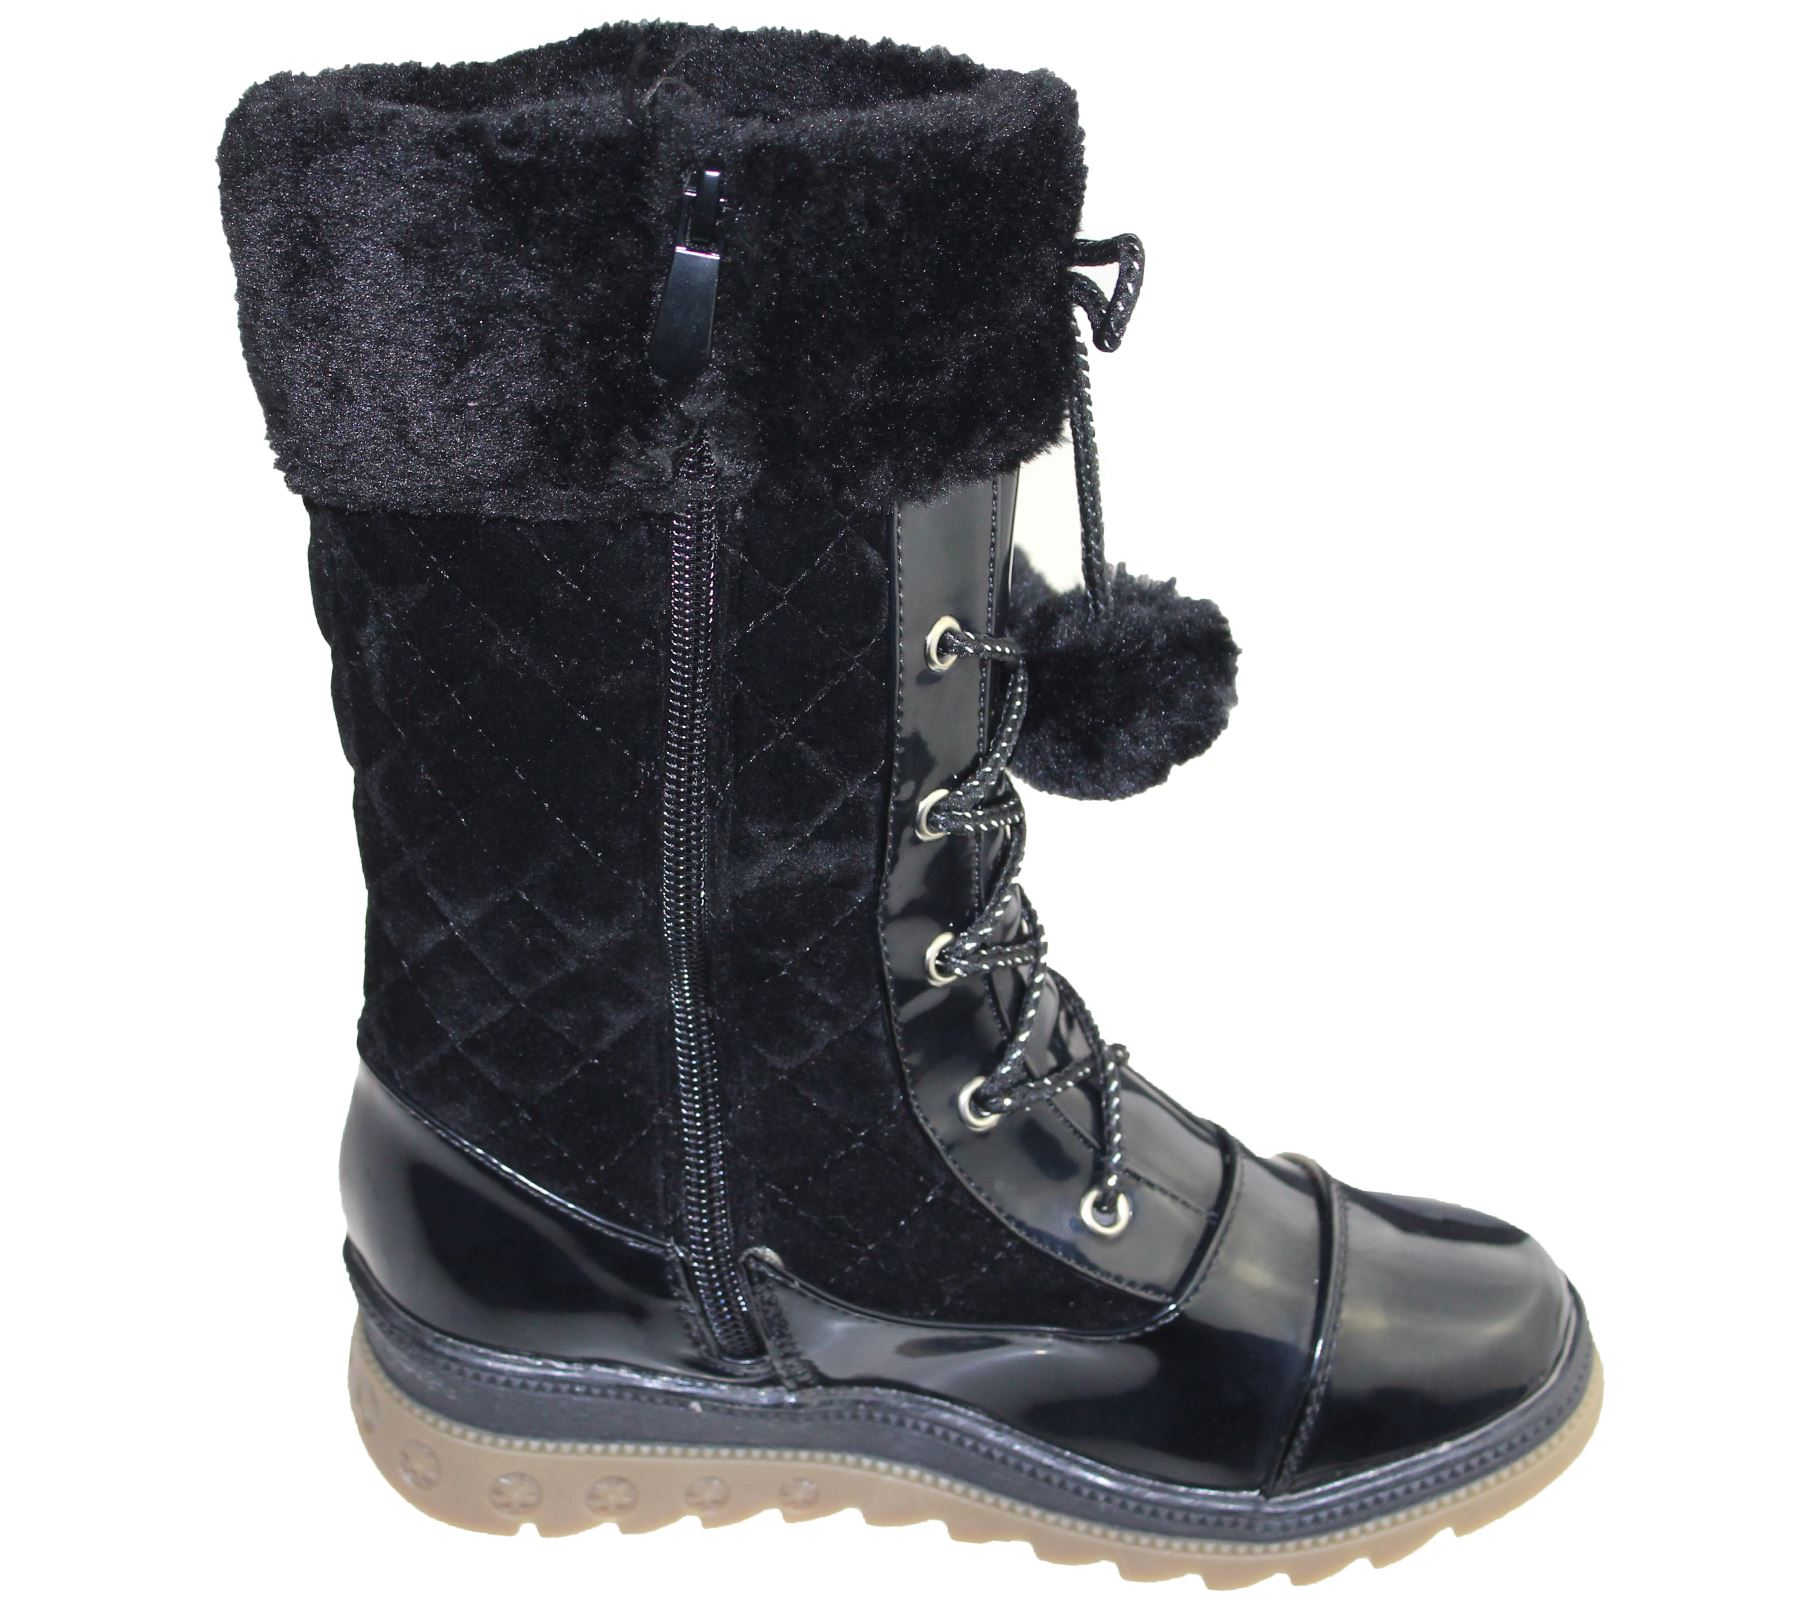 Shop Girls' Boots at Payless to find the lowest prices on boots. Free Shipping +$25, Free Returns at any Payless Store. Payless ShoeSource.